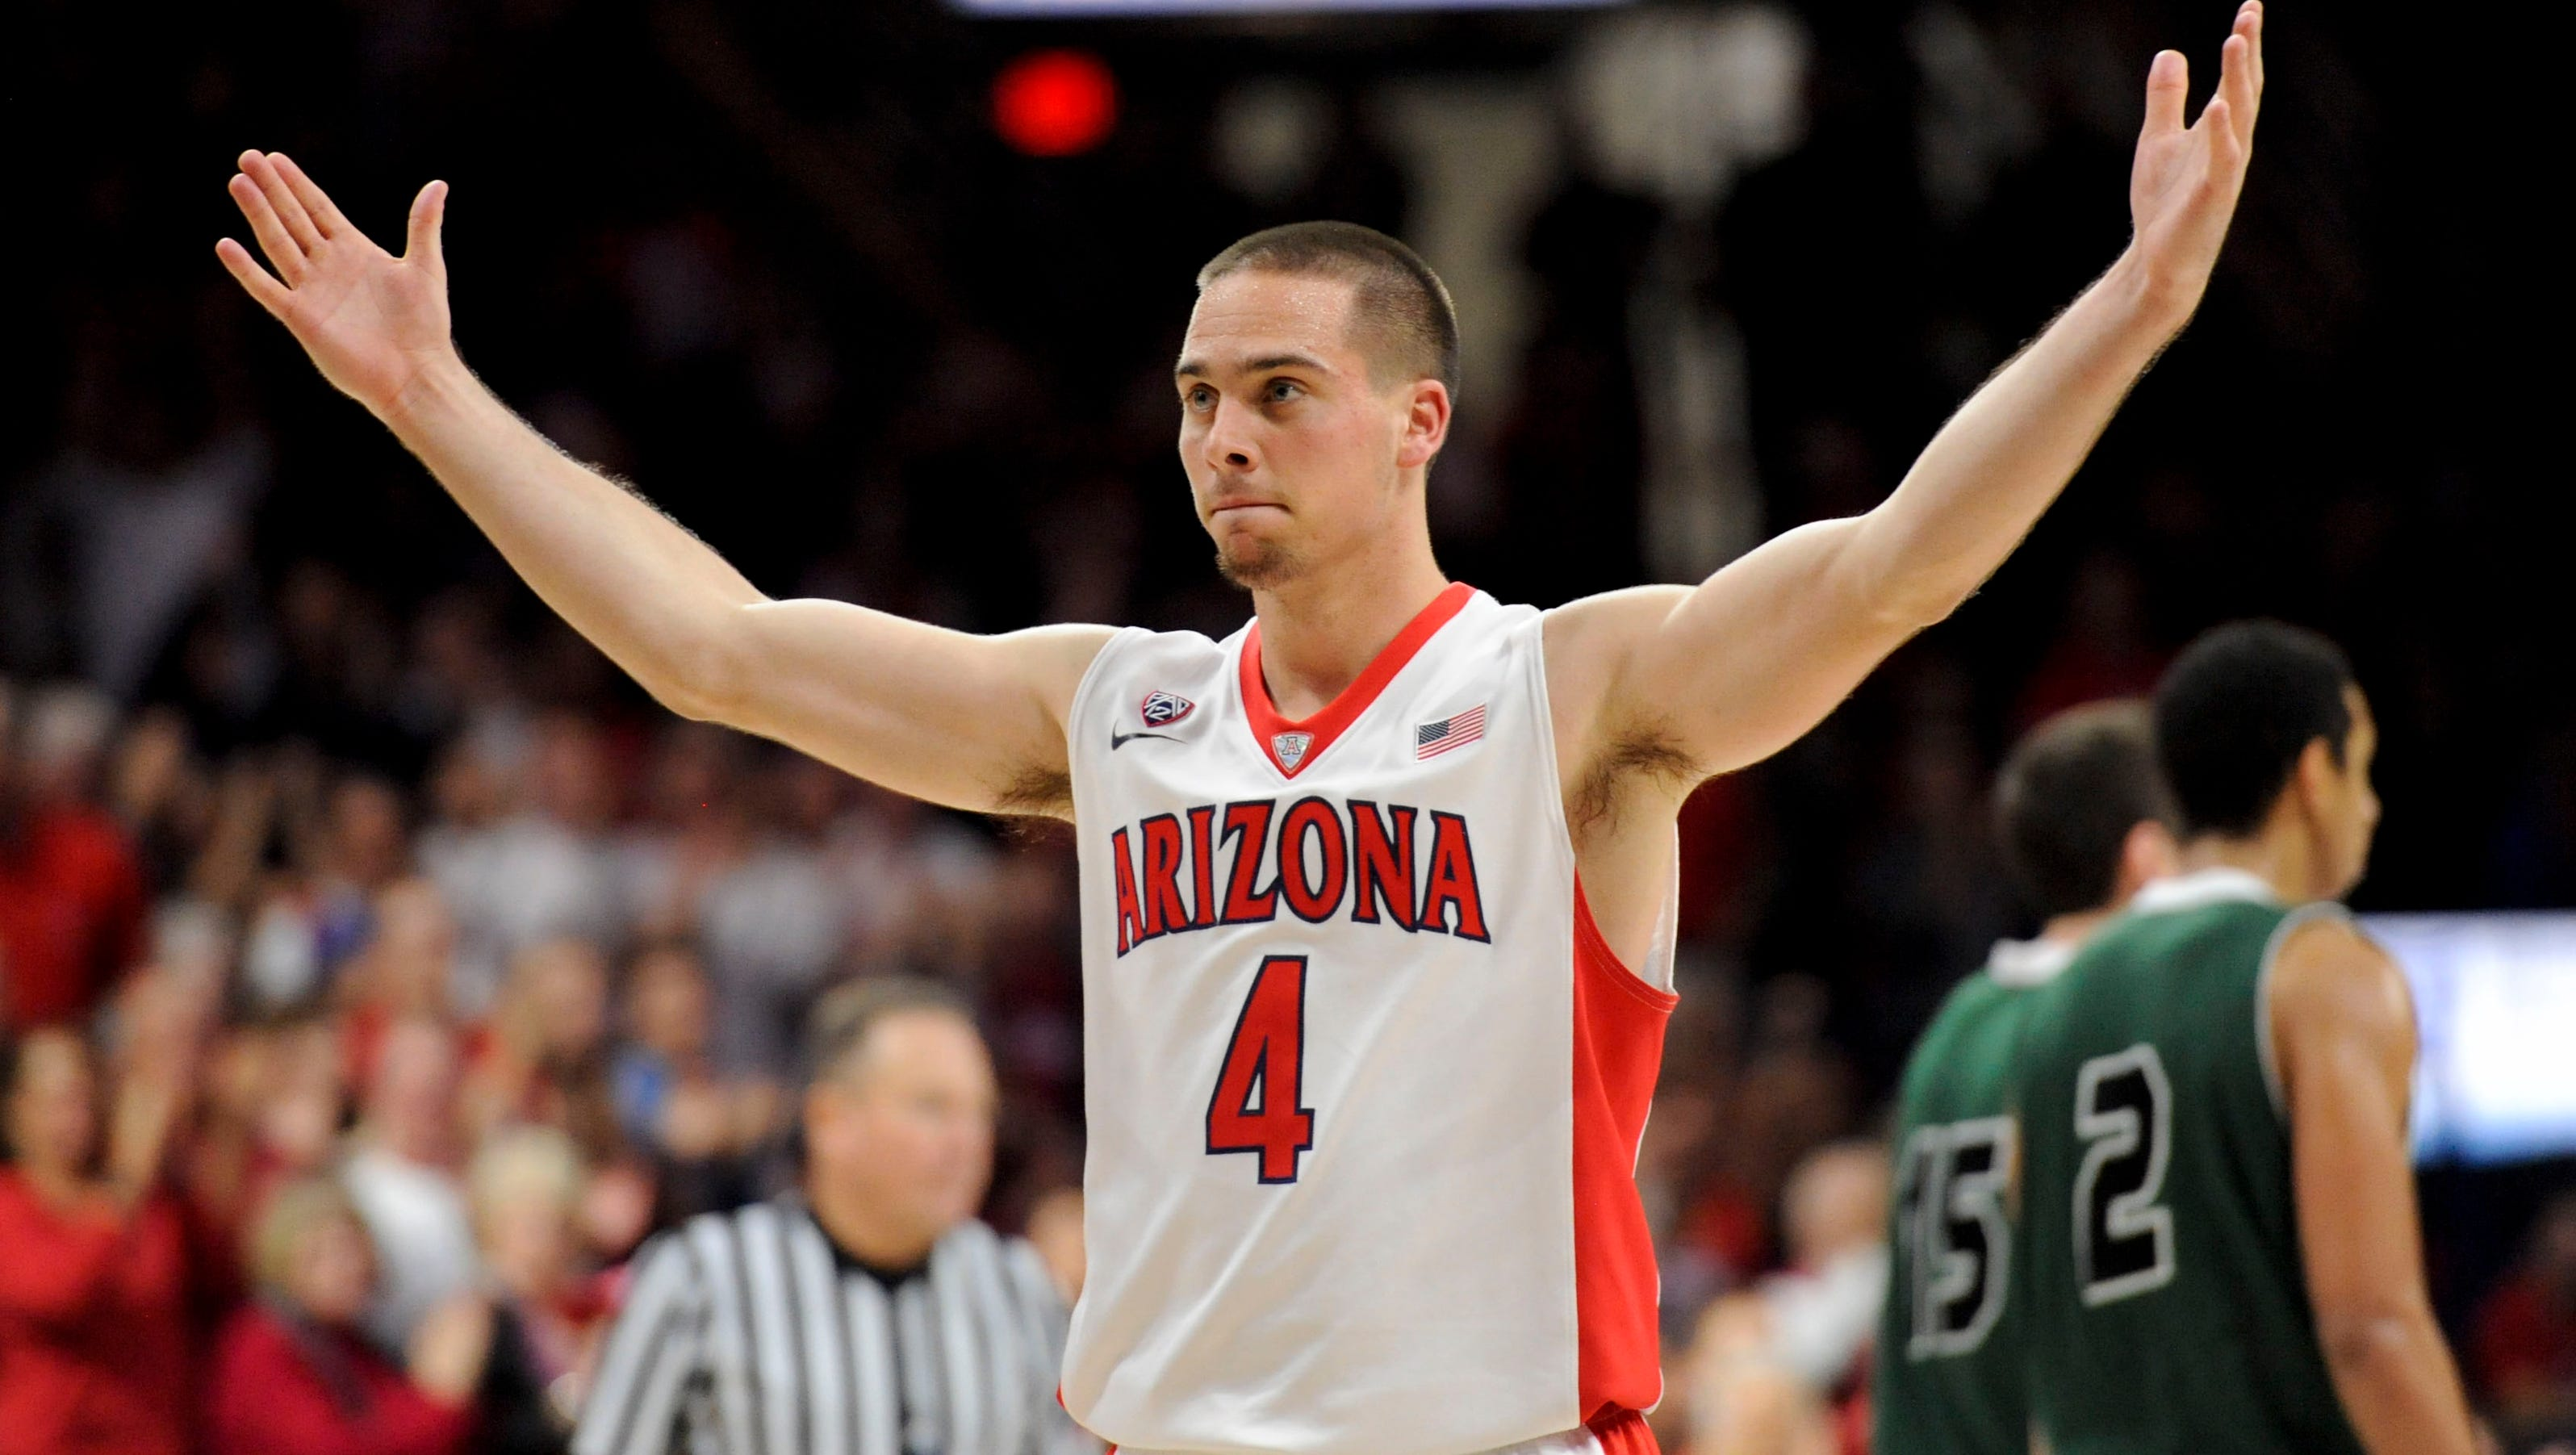 Arizona men's basketball getting 'great floor play' from ...